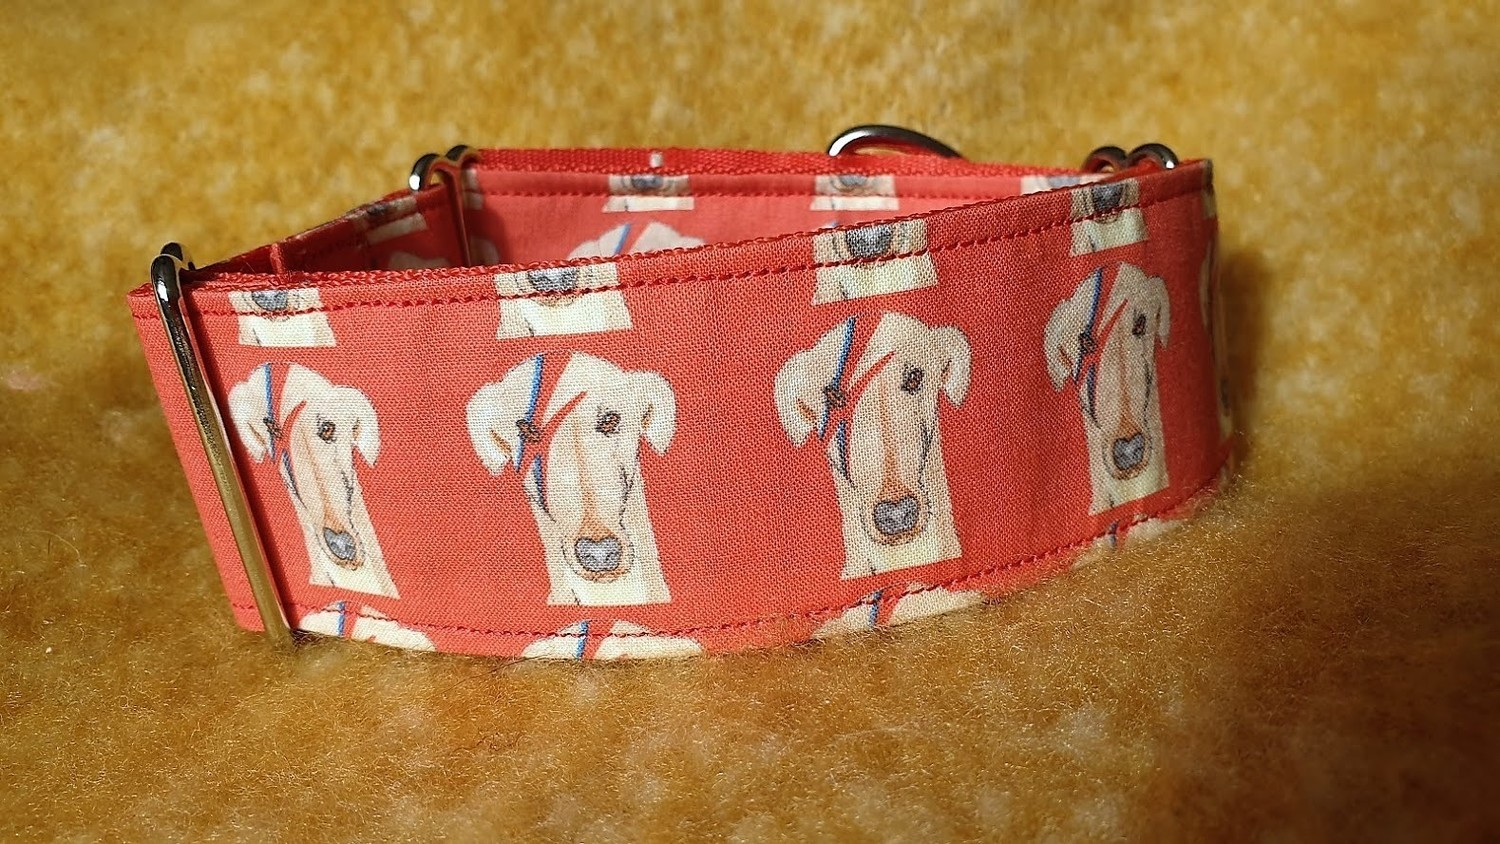 Collar 'Ziggy Star Dog' in Red On Fabric by Jane Wren